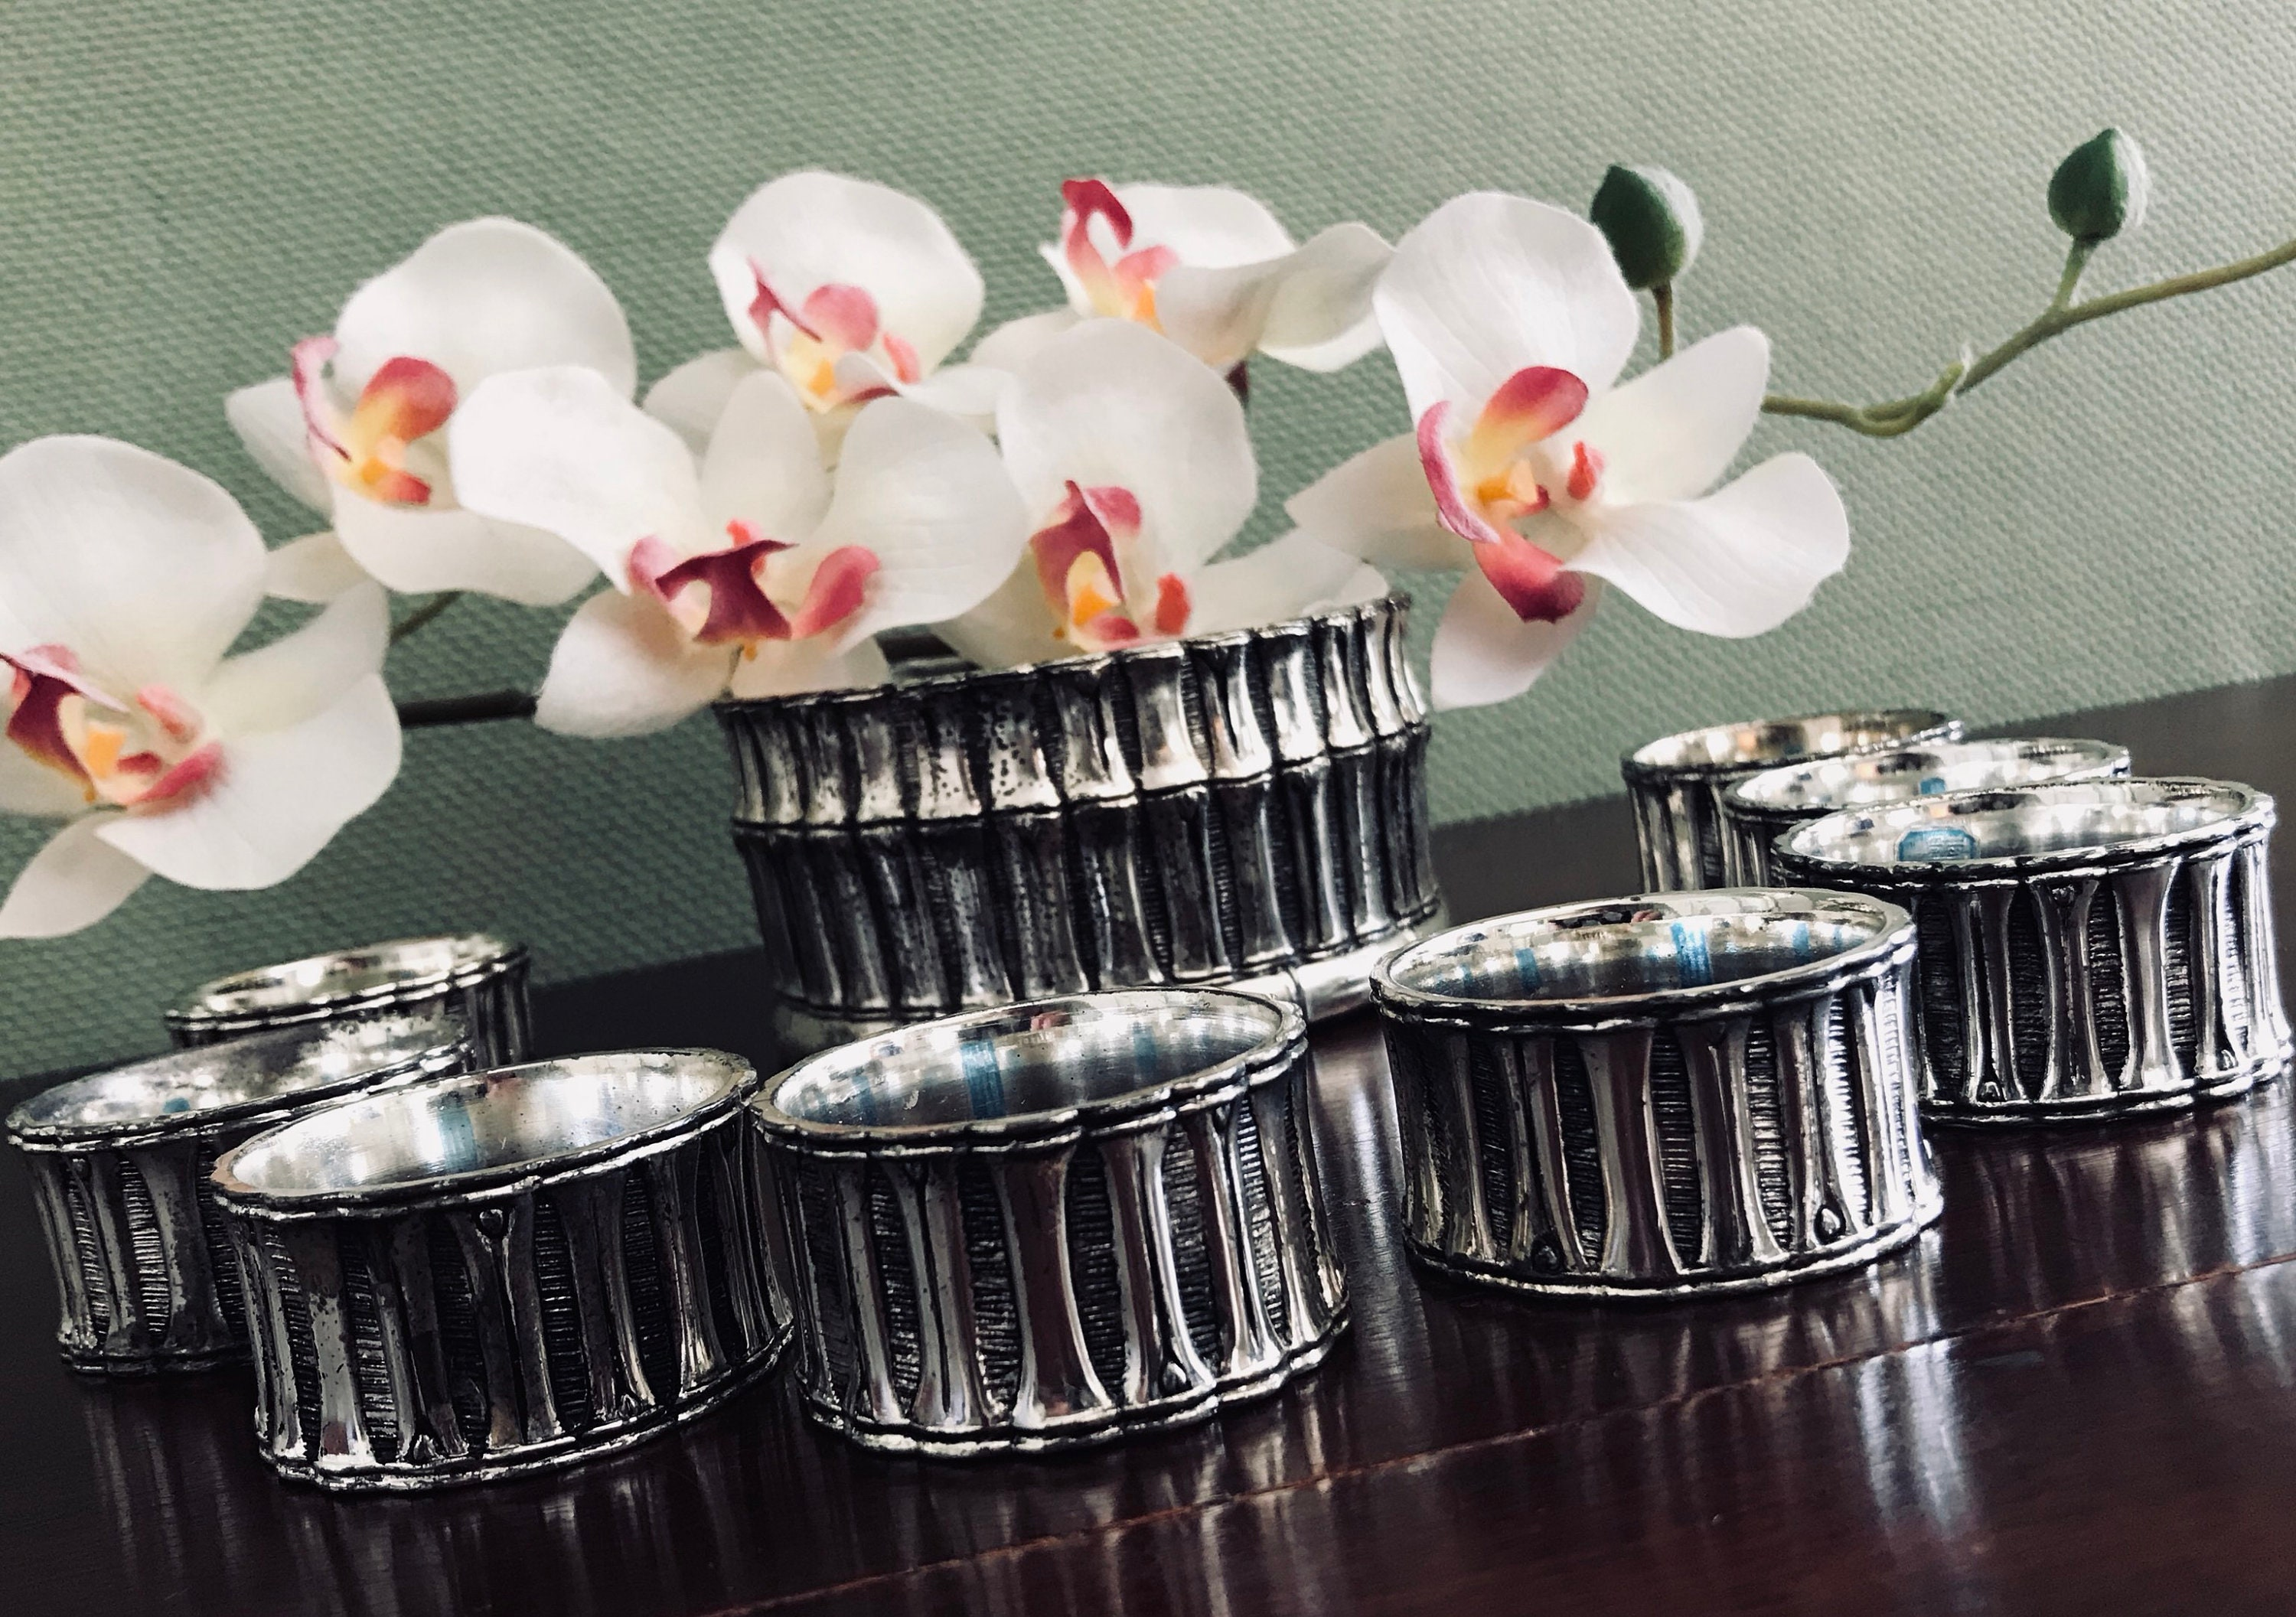 Bamboo Napkin Rings And Centerpiece Silver Plated Napkin Rings Matching Centerpiece Asian Vintage Napkin Rings Dinner Party Table Scape